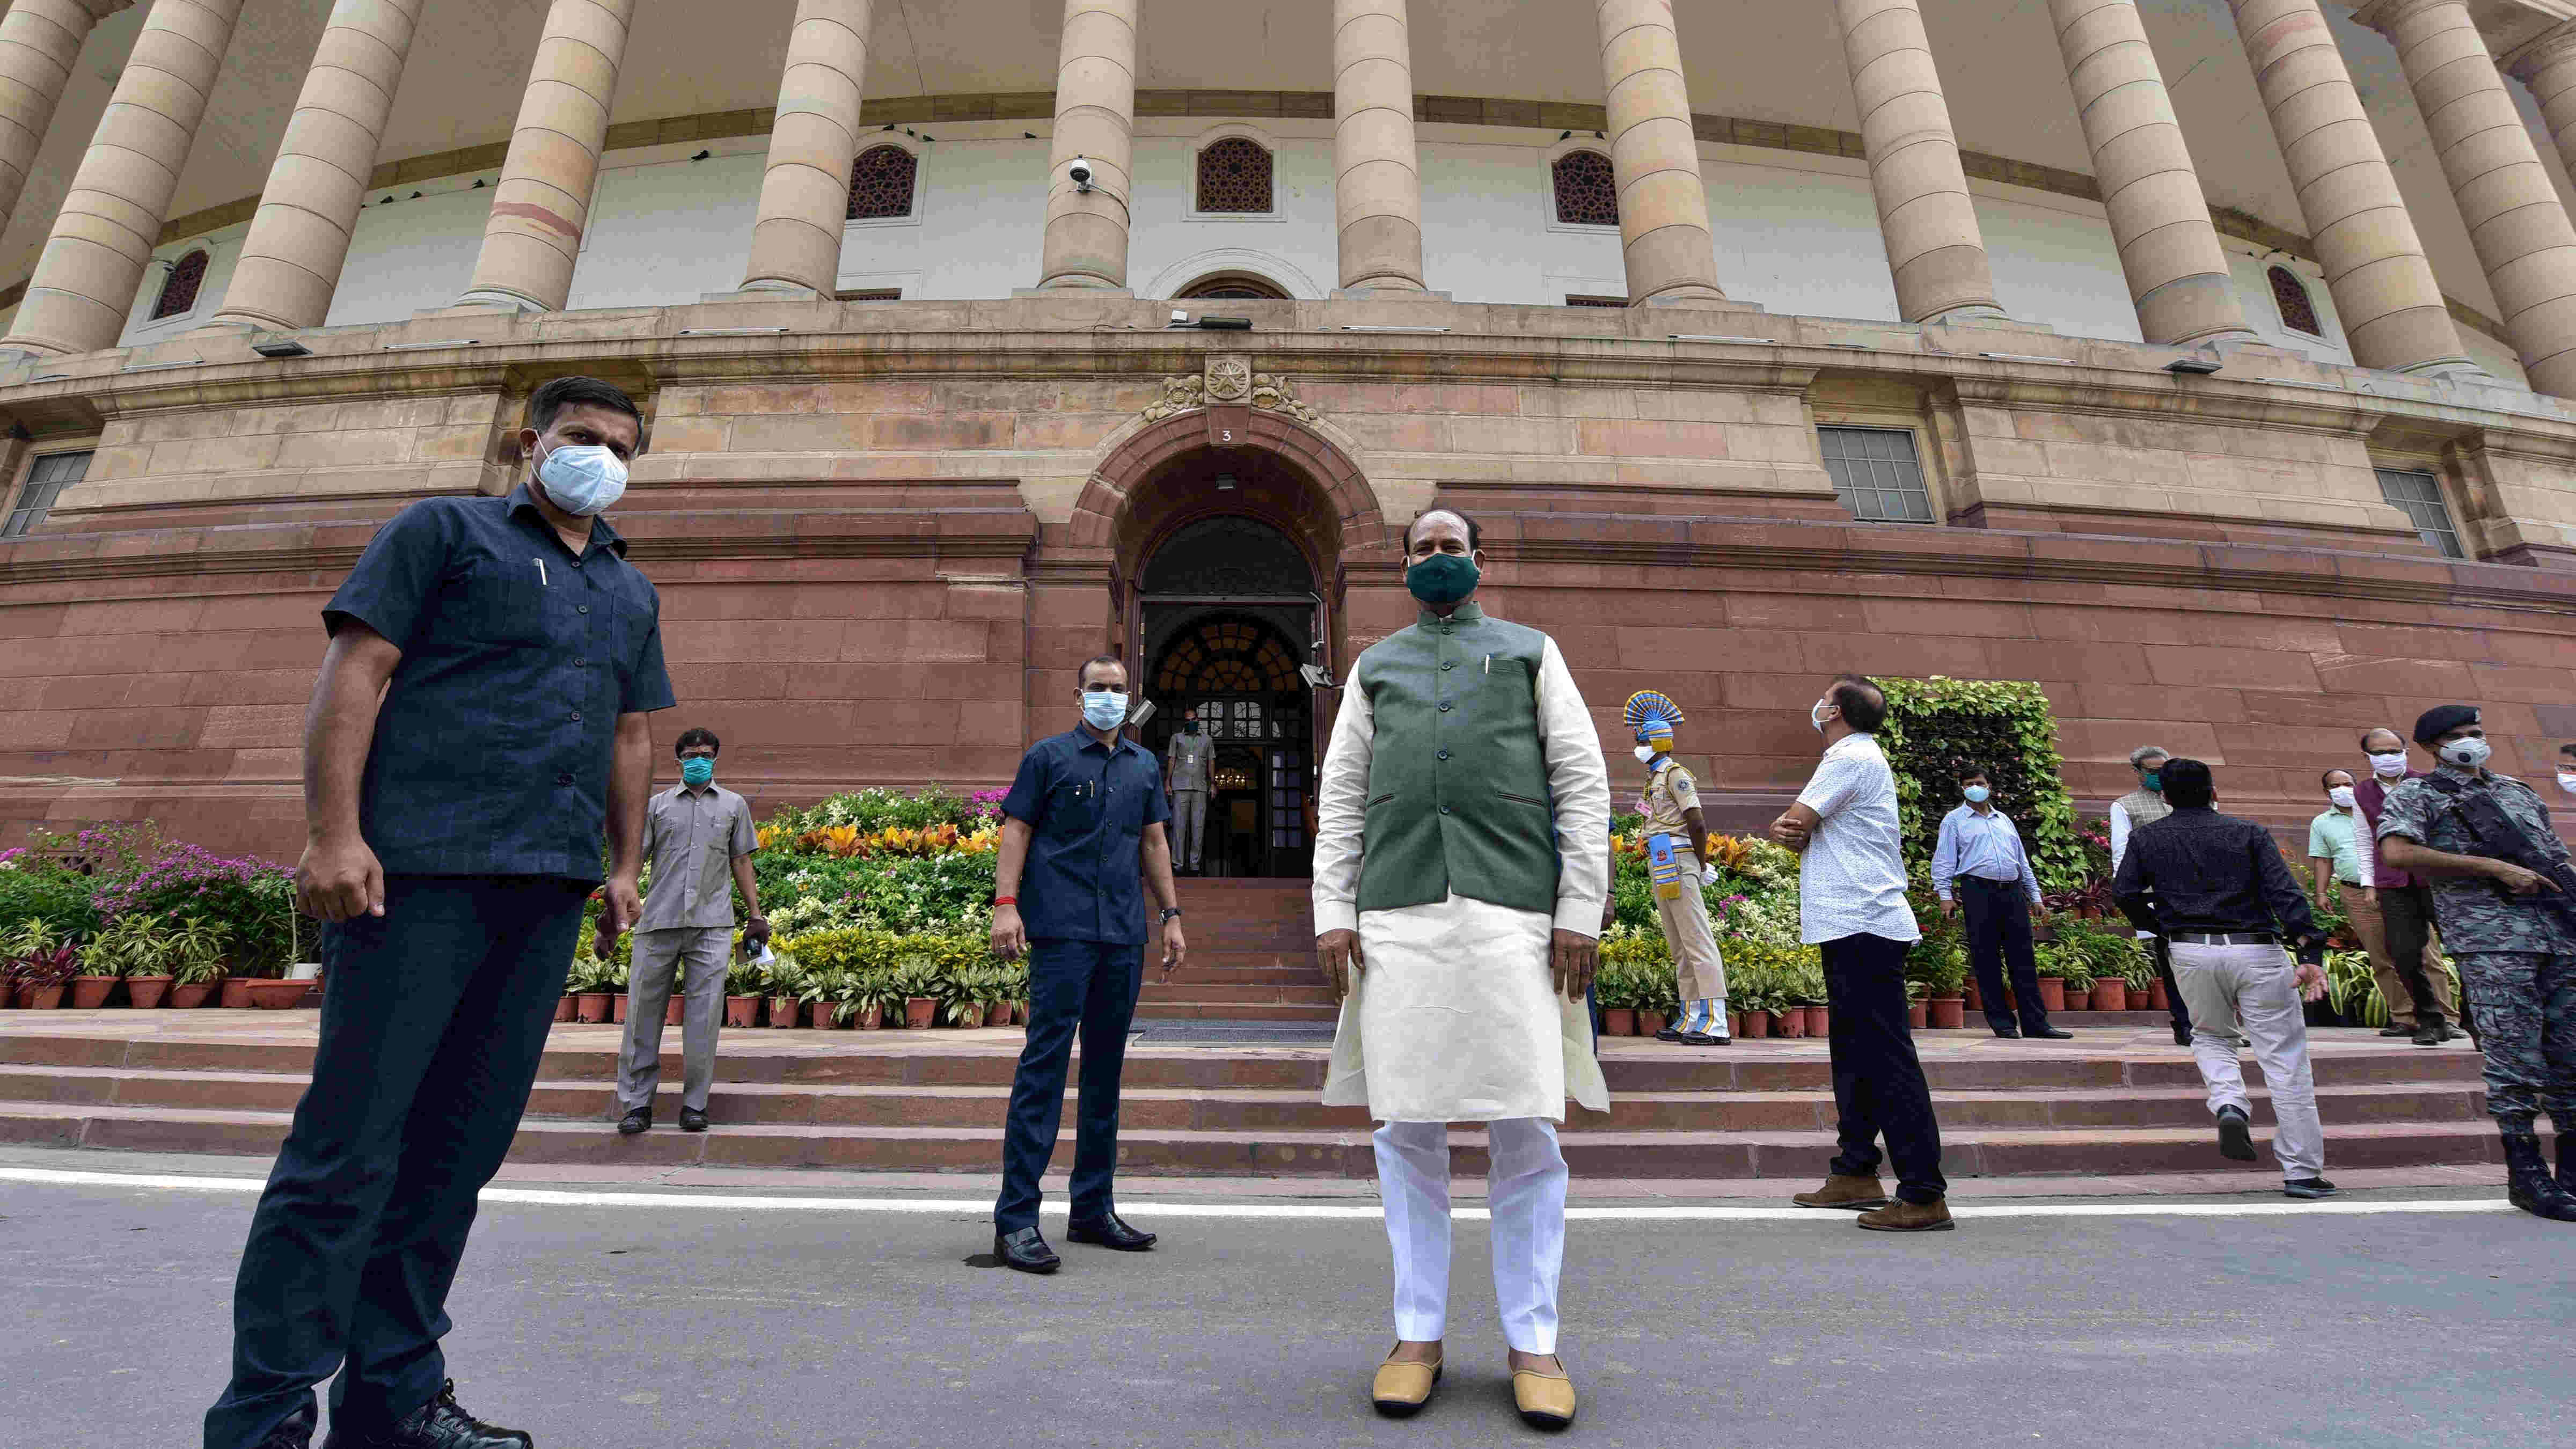 Lok Sabha Speaker Om Birla poses for a photograph at Parliament House ahead of the monsoon session of Parliament, in New Delhi, Sunday, Sept. 13, 2020.